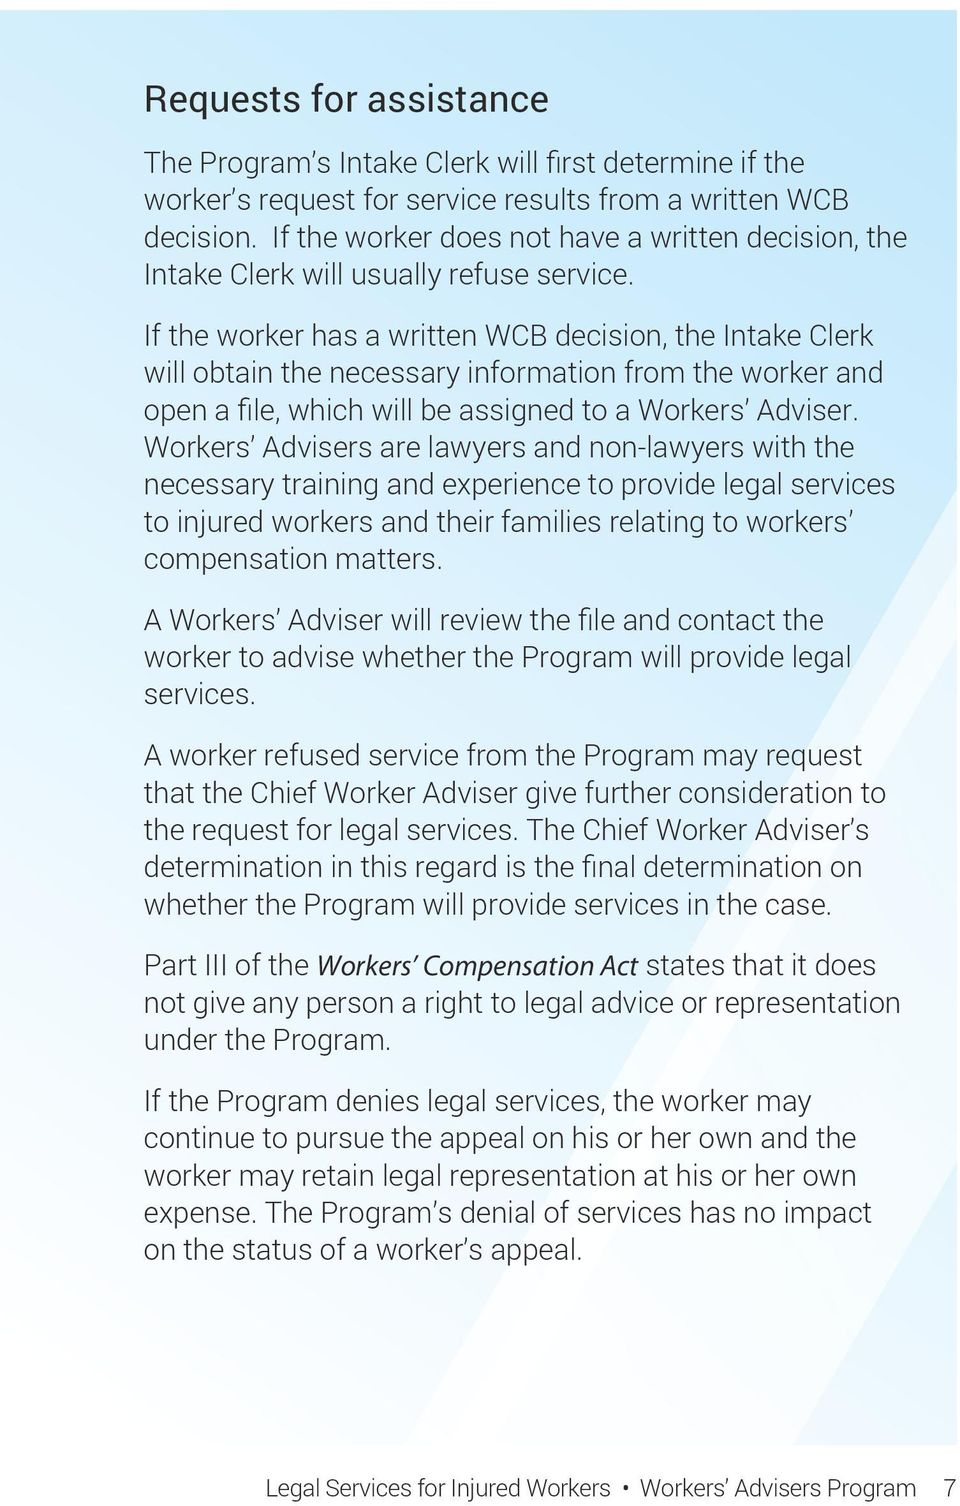 If the worker has a written WCB decision, the Intake Clerk will obtain the necessary information from the worker and open a file, which will be assigned to a Workers Adviser.